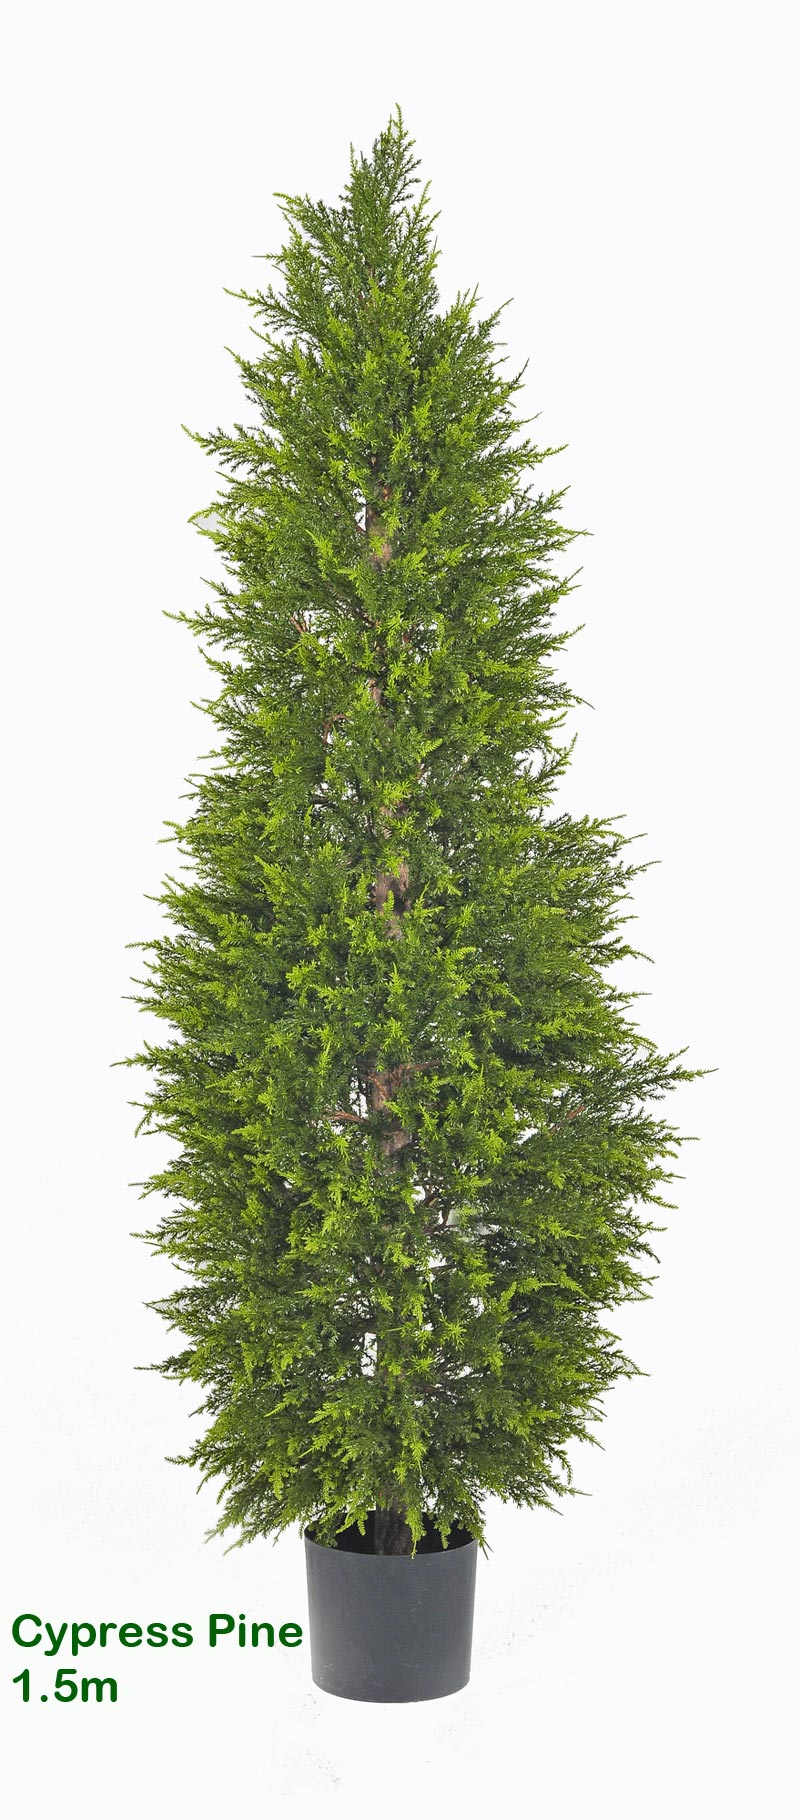 Box Springs For Sale >> artificial Cypress Pine, fake cypress pine, artificial conifer, fake conifer